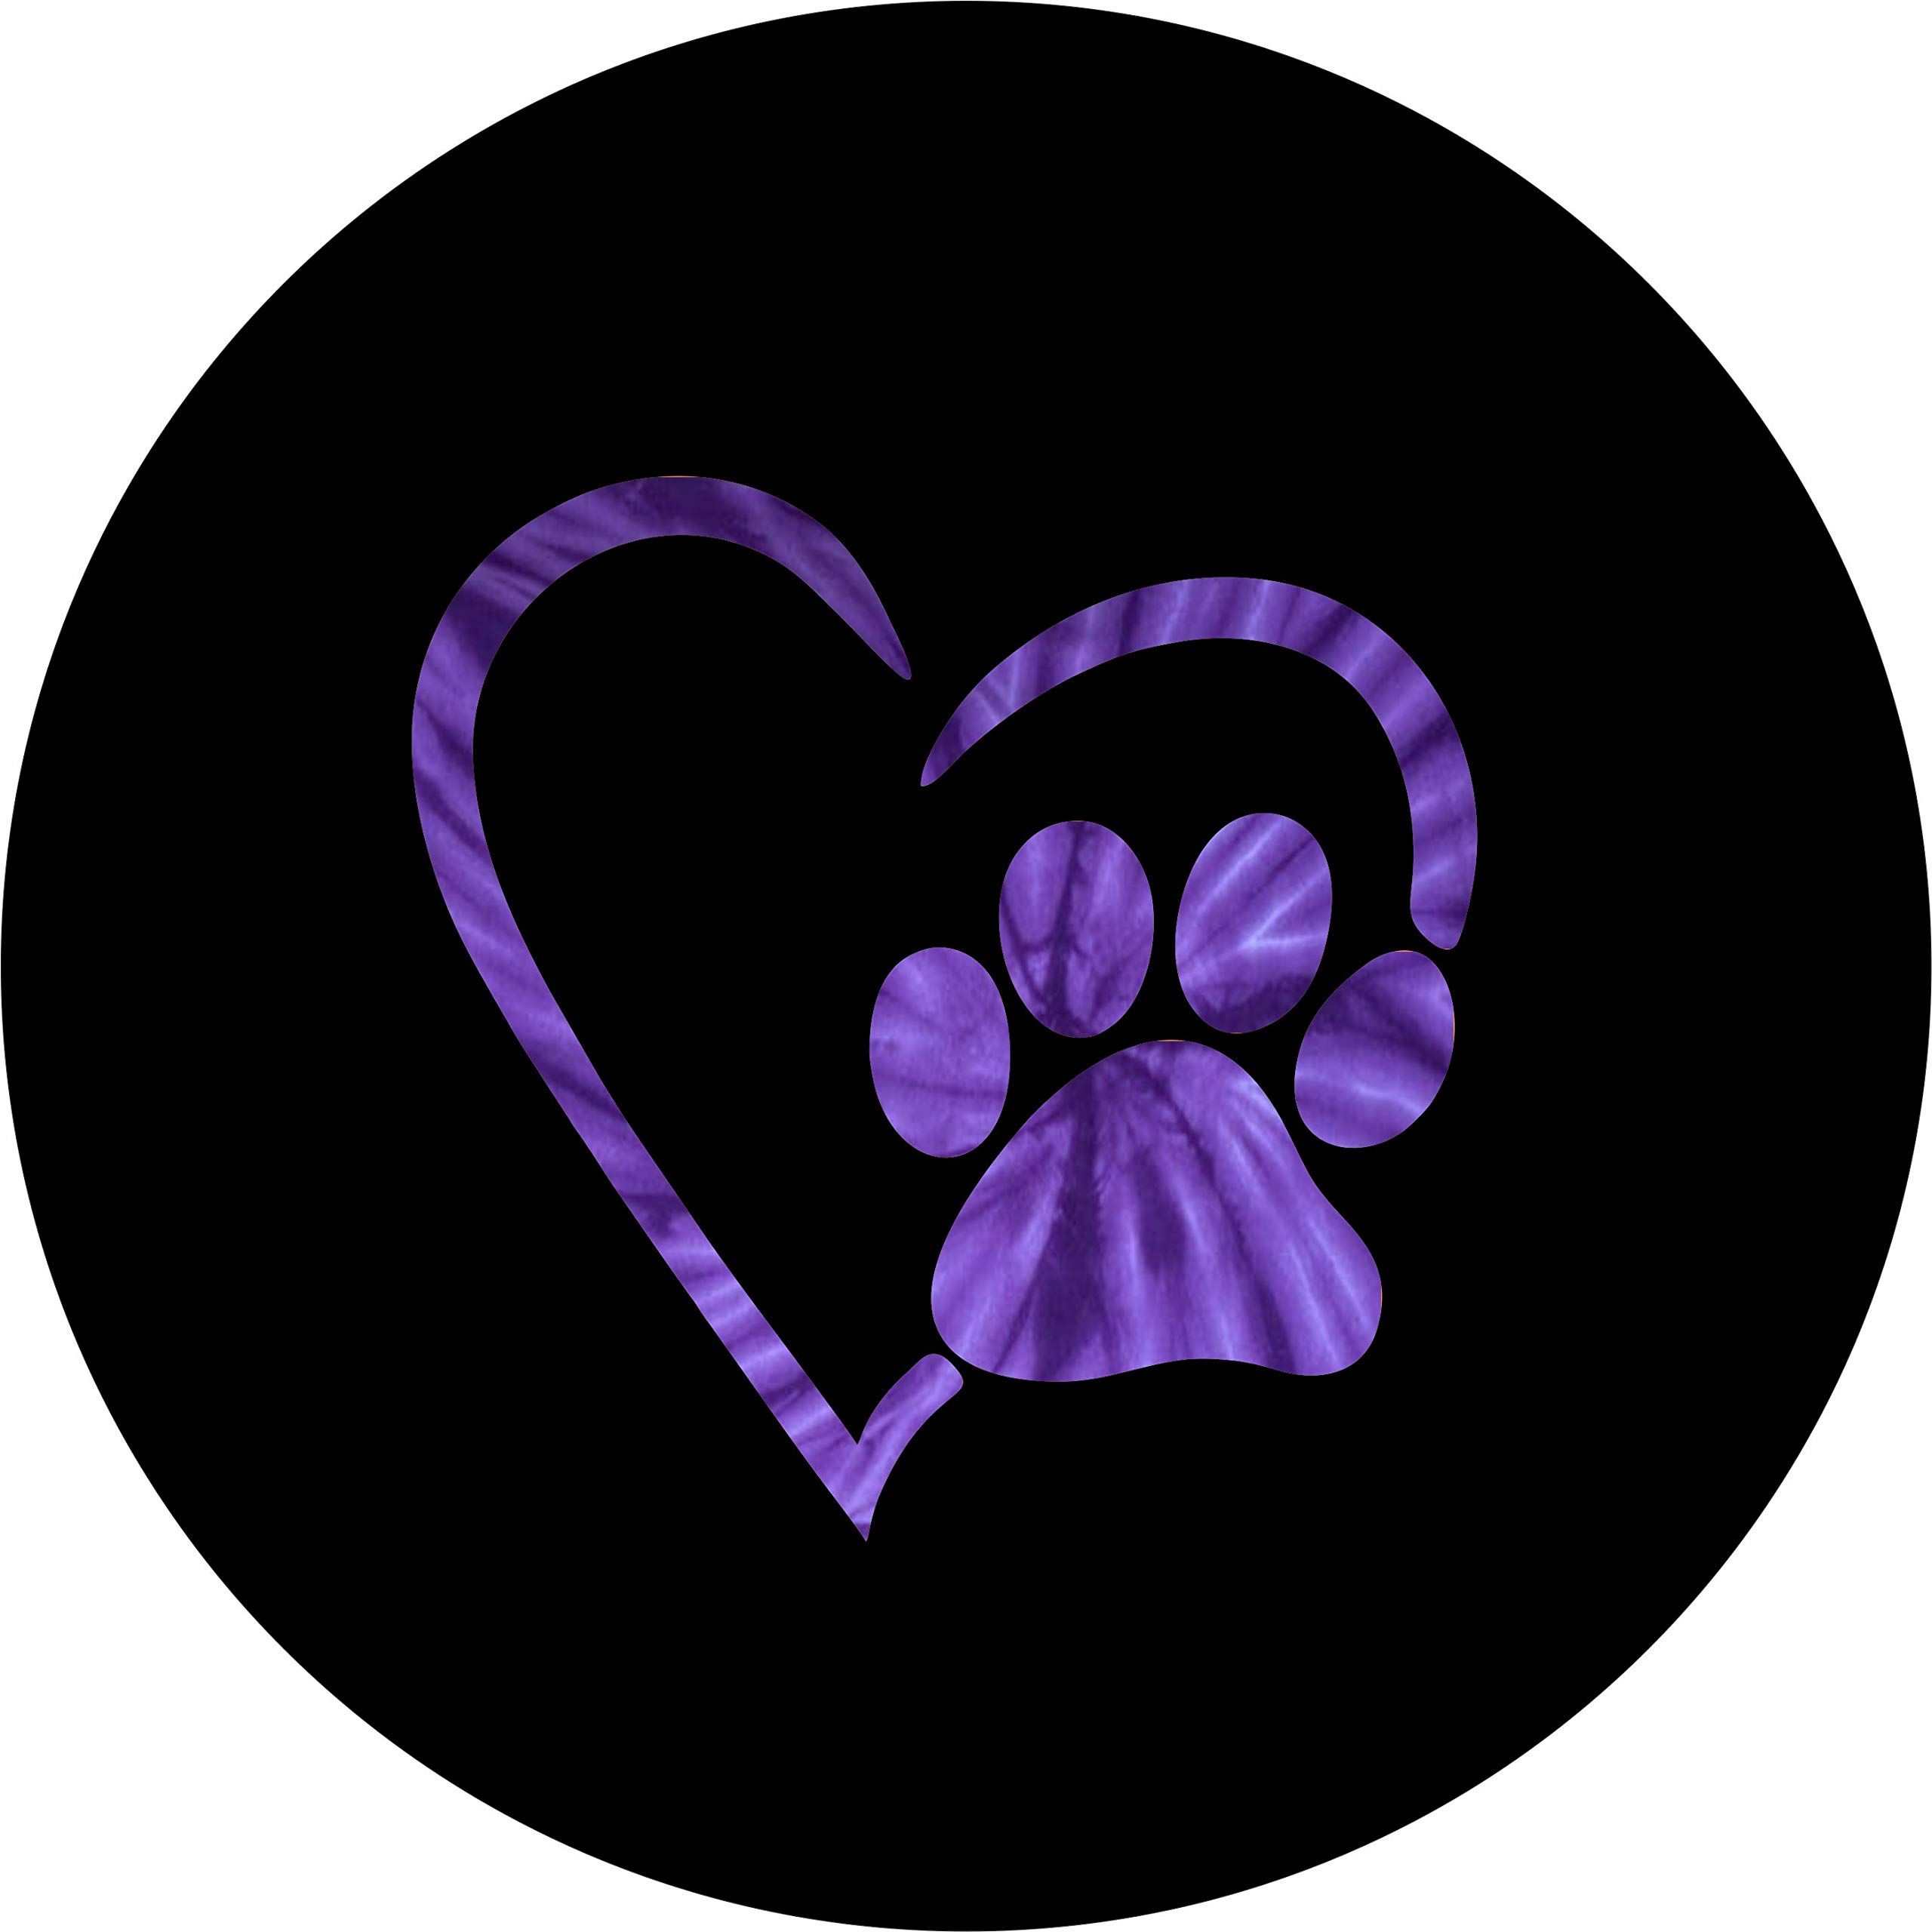 TIRE COVER CENTRAL Paws Love Purple Tie Dye Heart Spare Tire Cover for 265/70r17 fits Camper, Jeep, RV, Scamp, Trailer(Drop Down menu Sizes